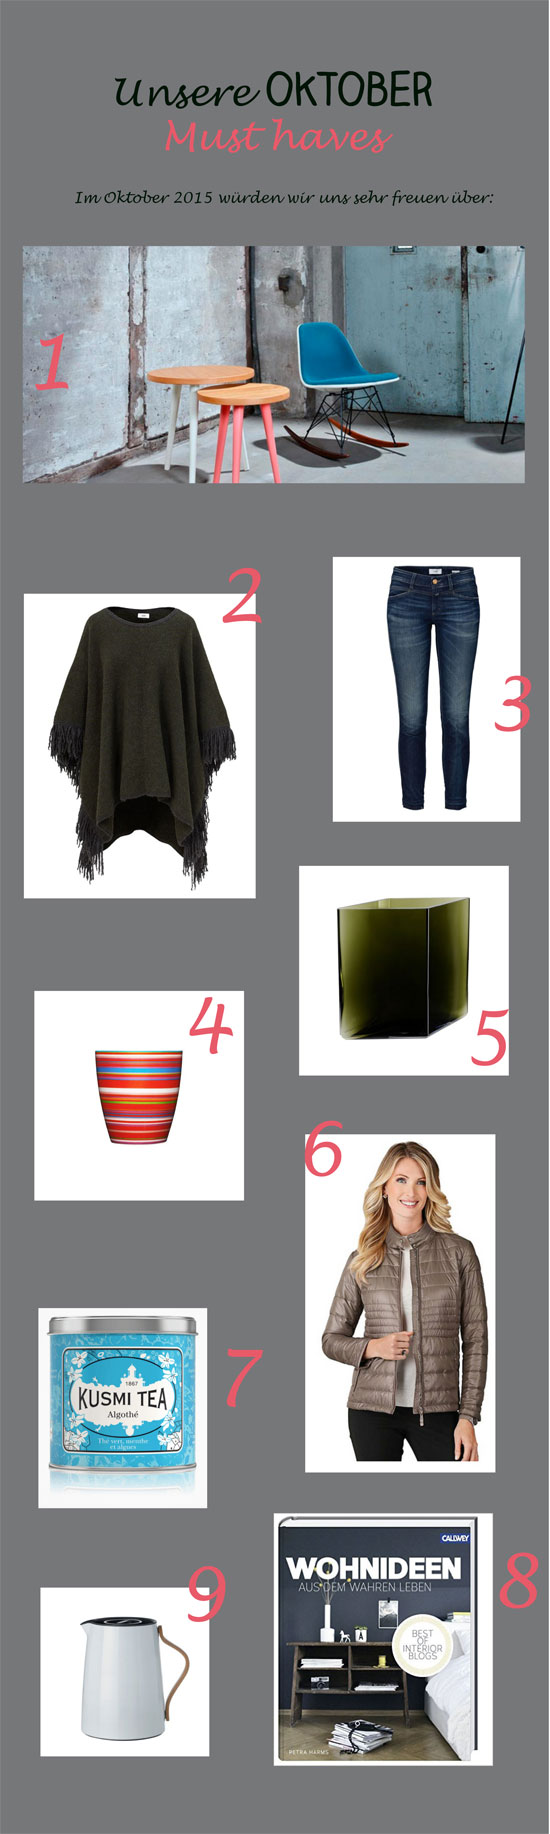 Oktober-Must-haves-2015